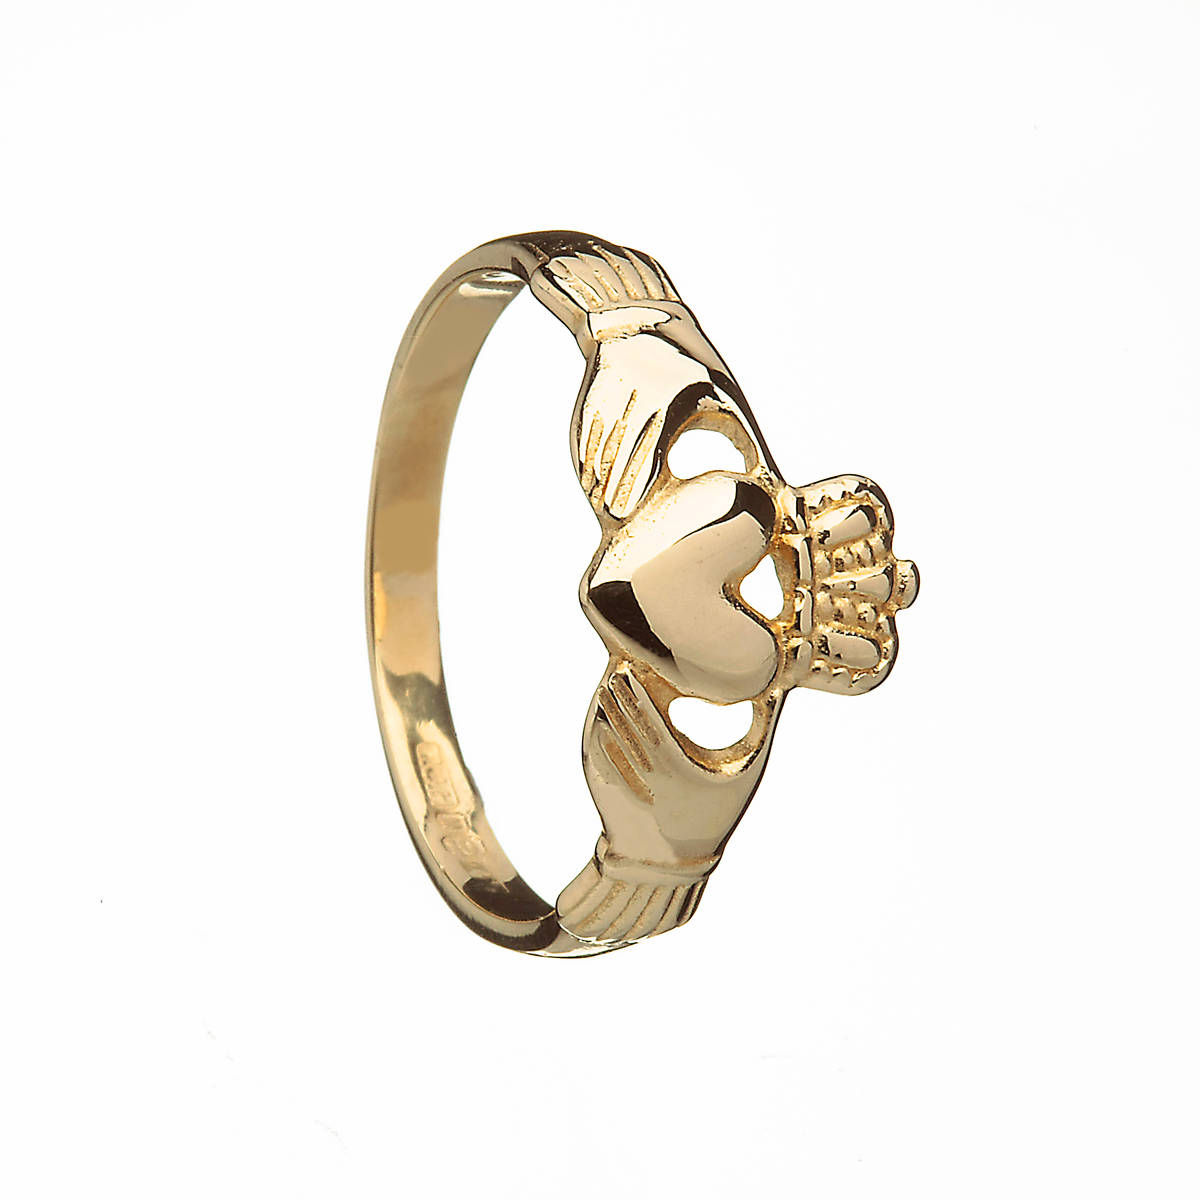 10 ct yellow gold Claddagh ring